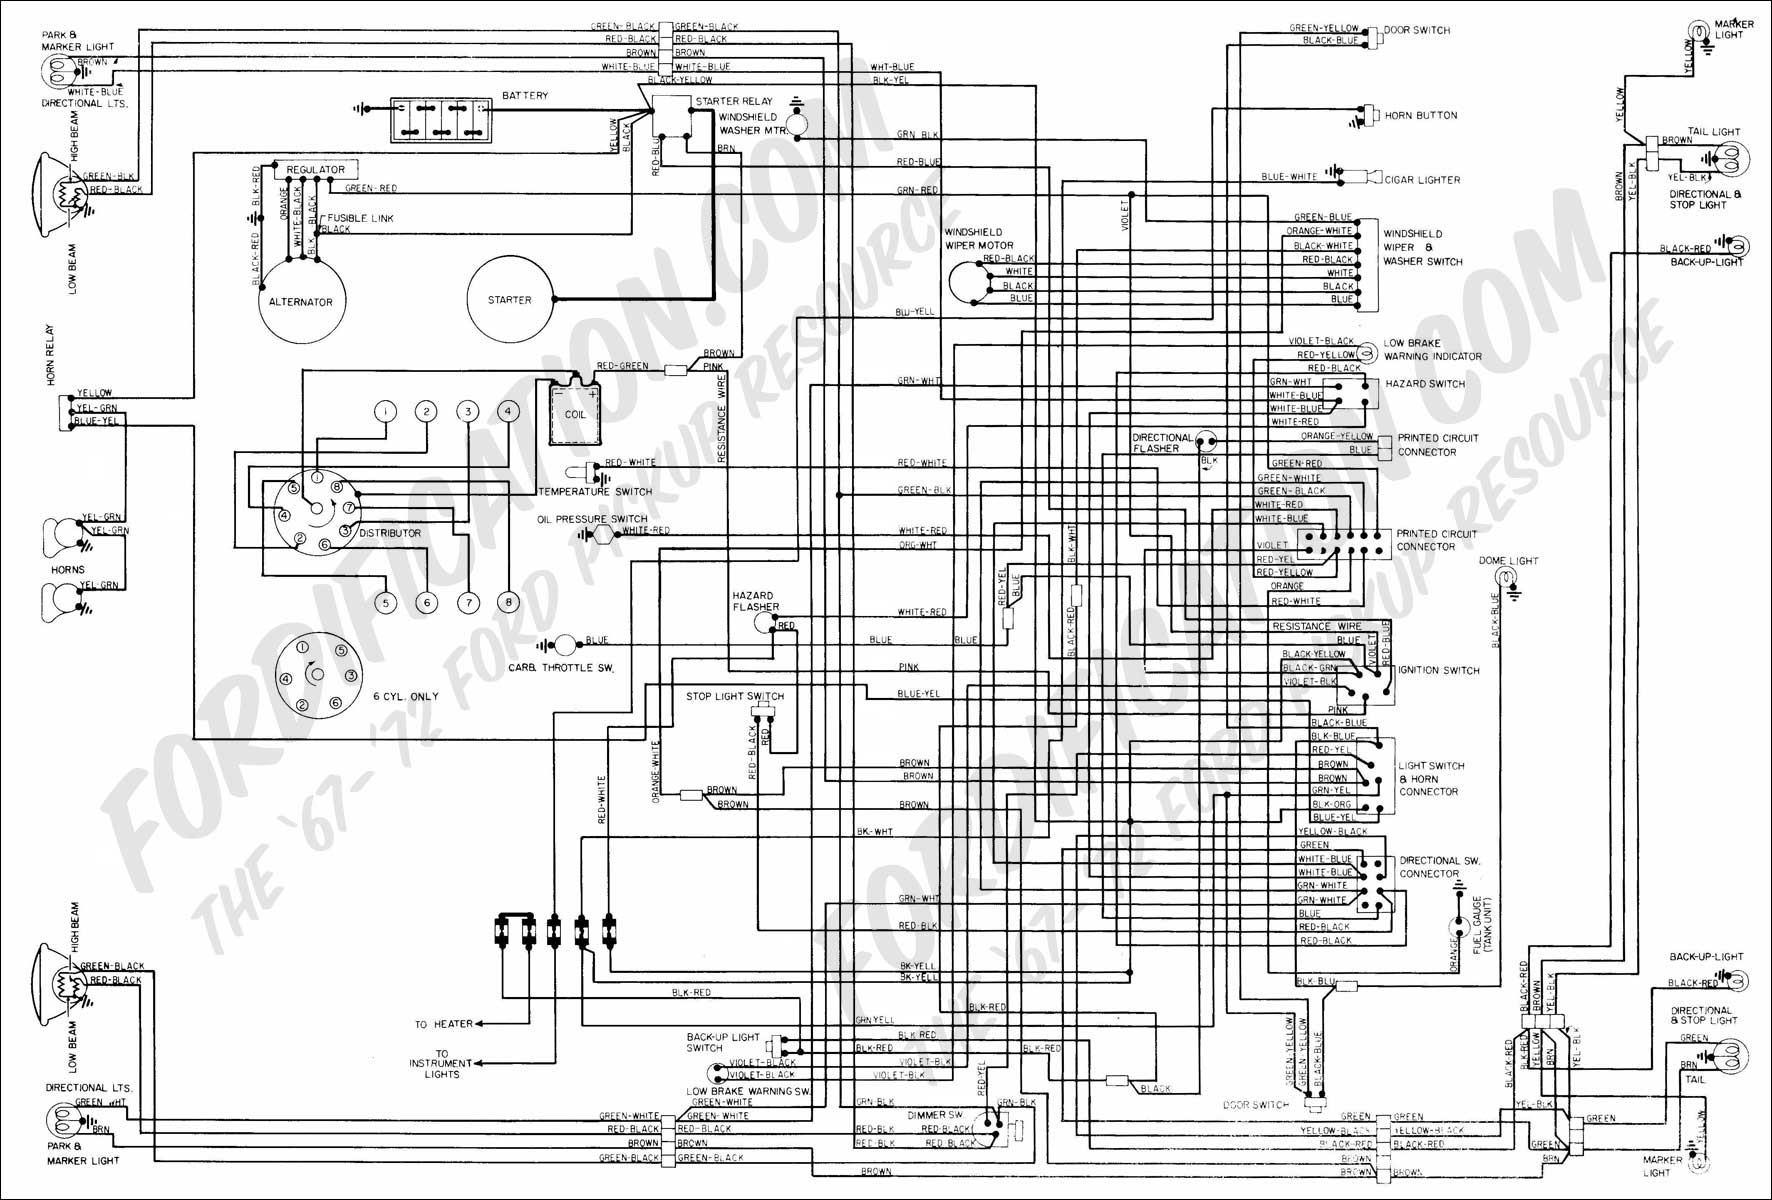 wiring diagram 72_quick 2002 ford f250 wiring diagram efcaviation com 1999 ford f350 wiring diagram at gsmx.co